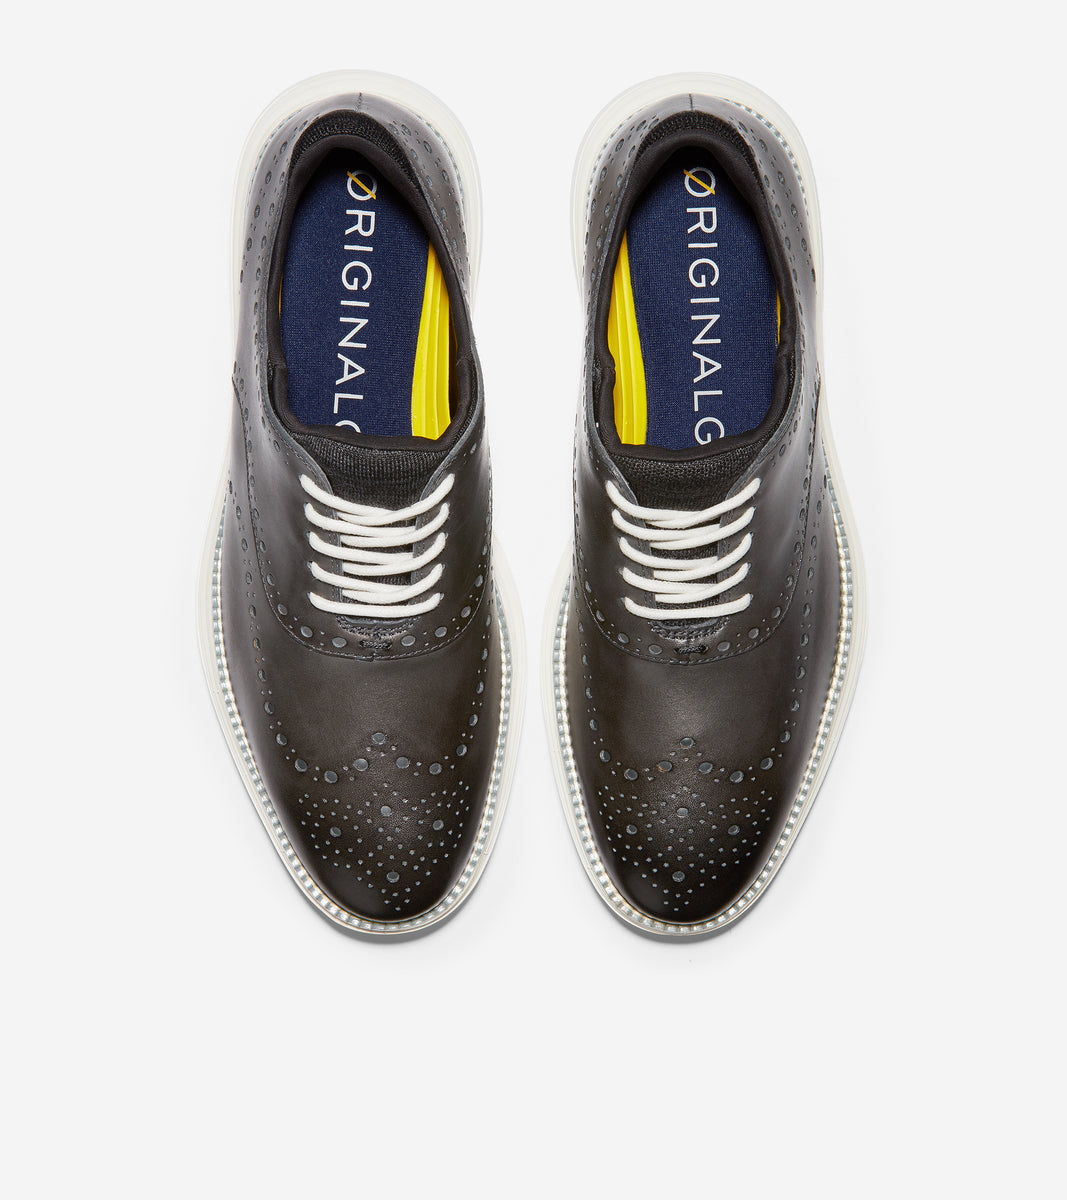 ØriginalGrand Ultra Wingtip Oxford